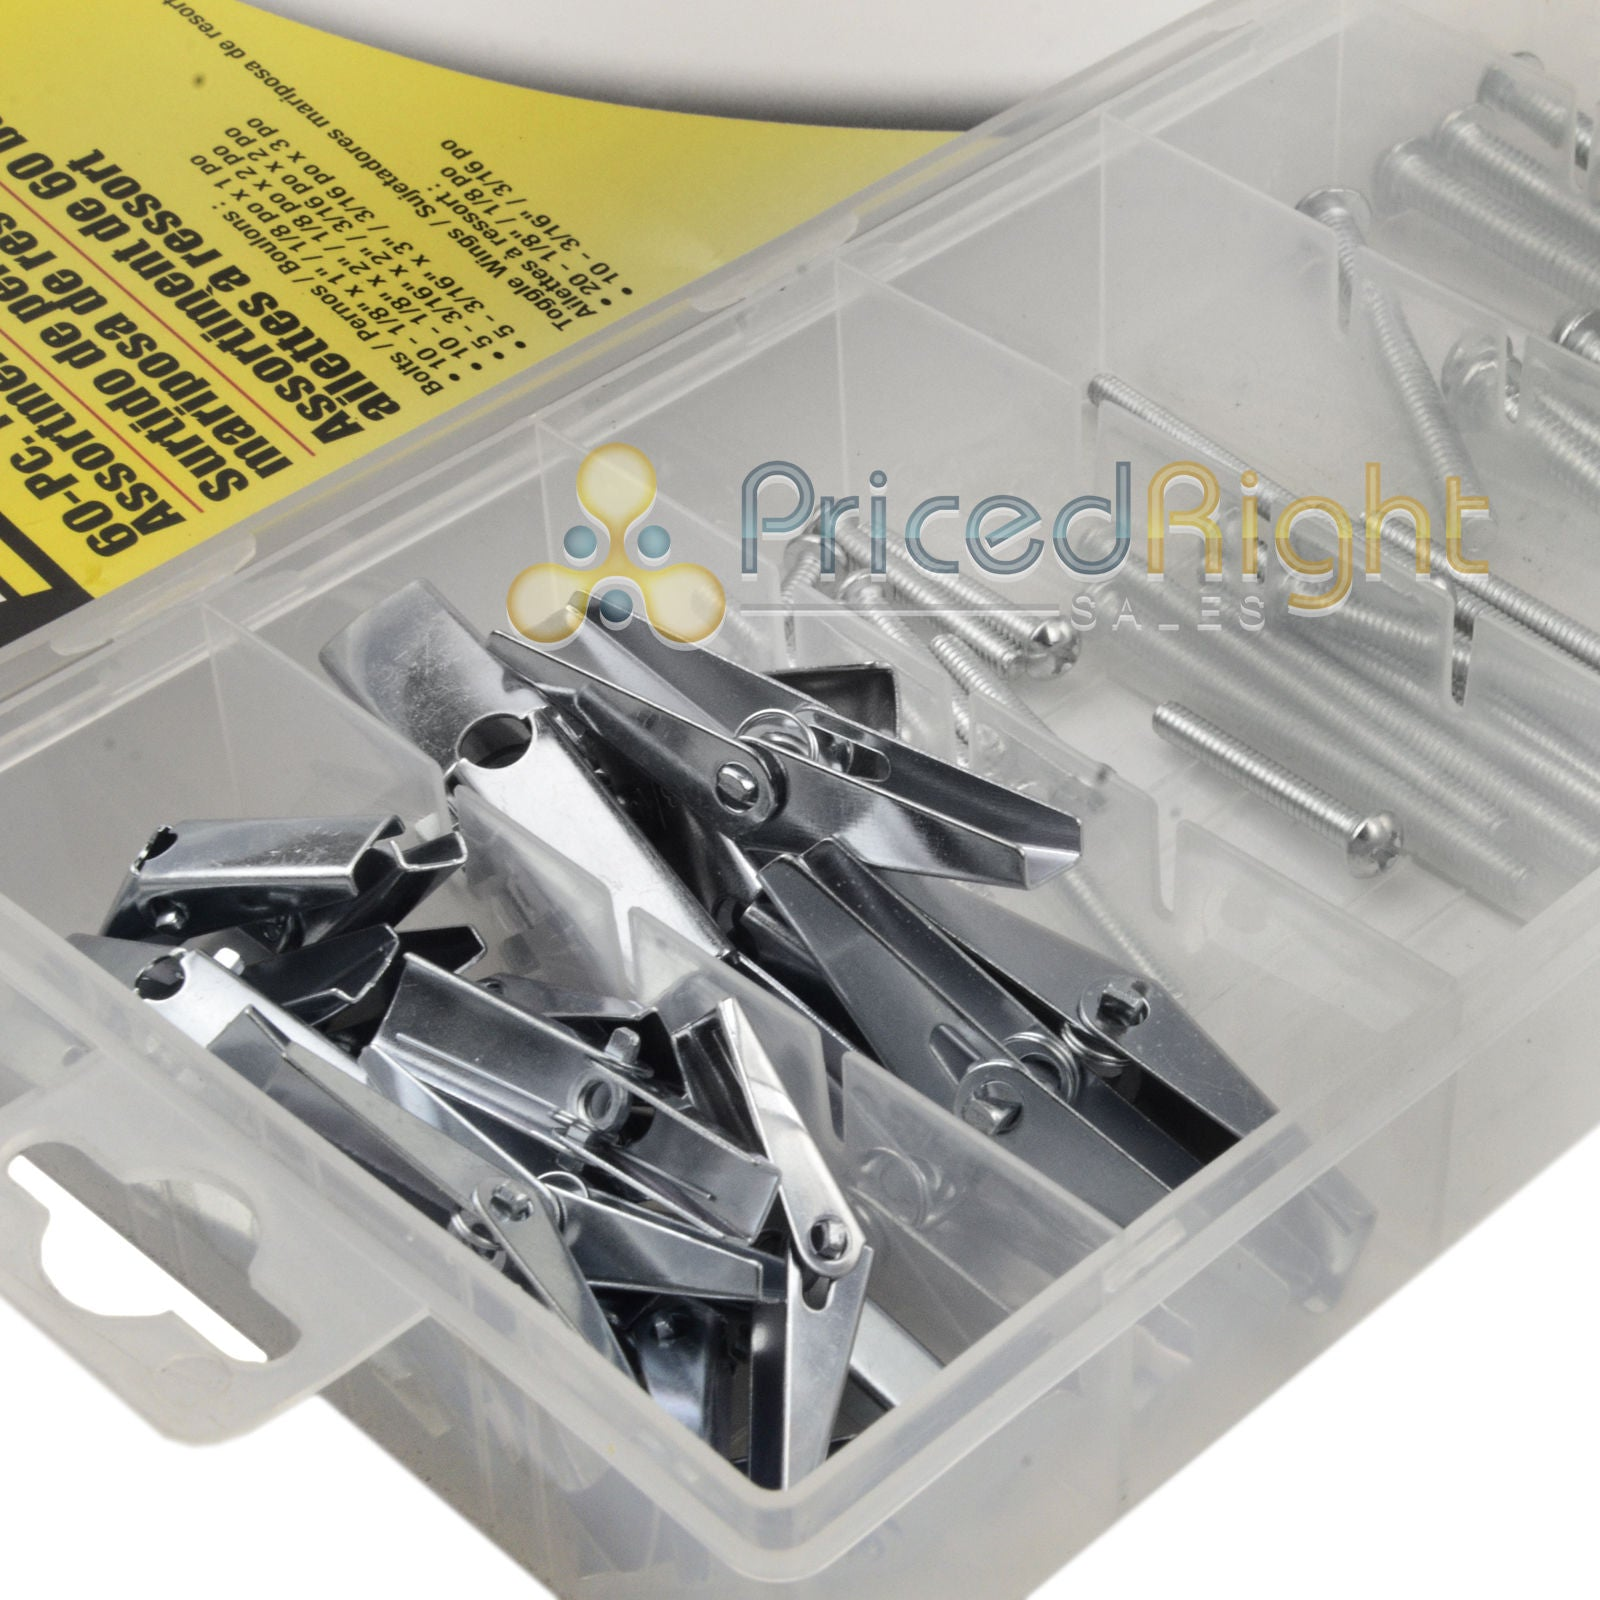 60 Piece Pc Toggle Wing and Bolt Assortment Set Kit Maxcraft 7698